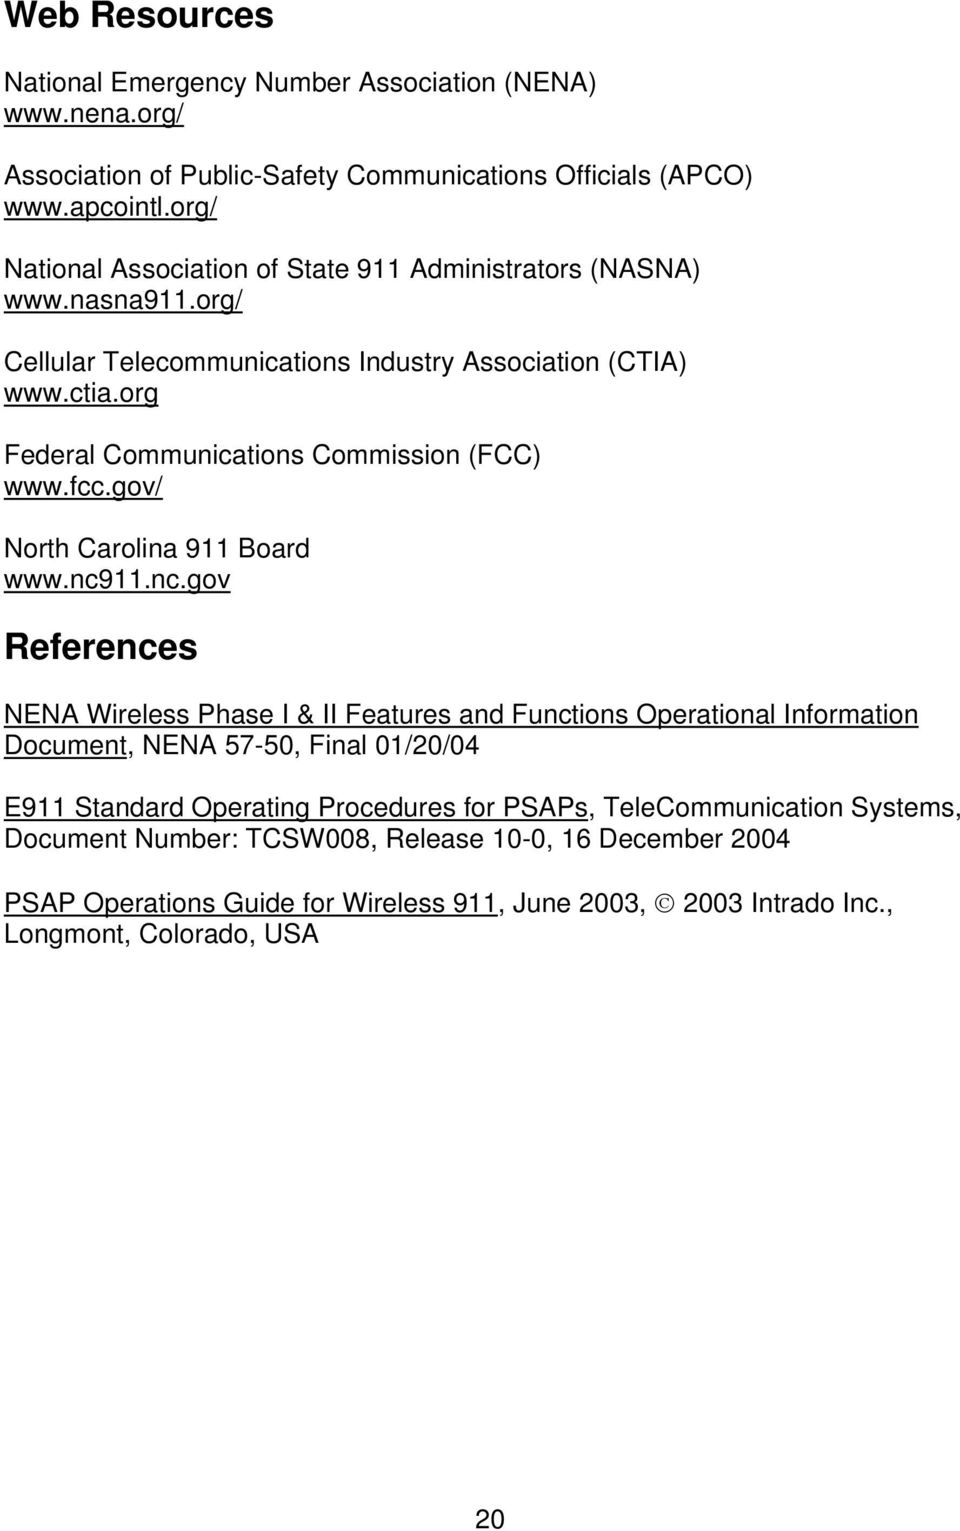 org Federal Communications Commission (FCC) www.fcc.gov/ North Carolina 911 Board www.nc9